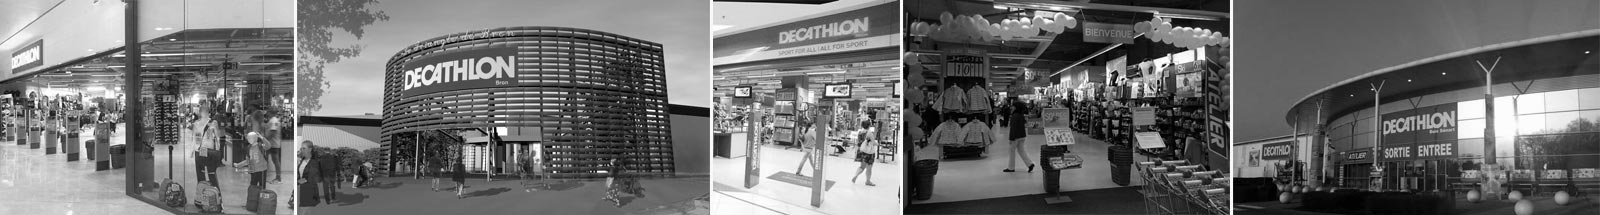 illustration de Decathlon